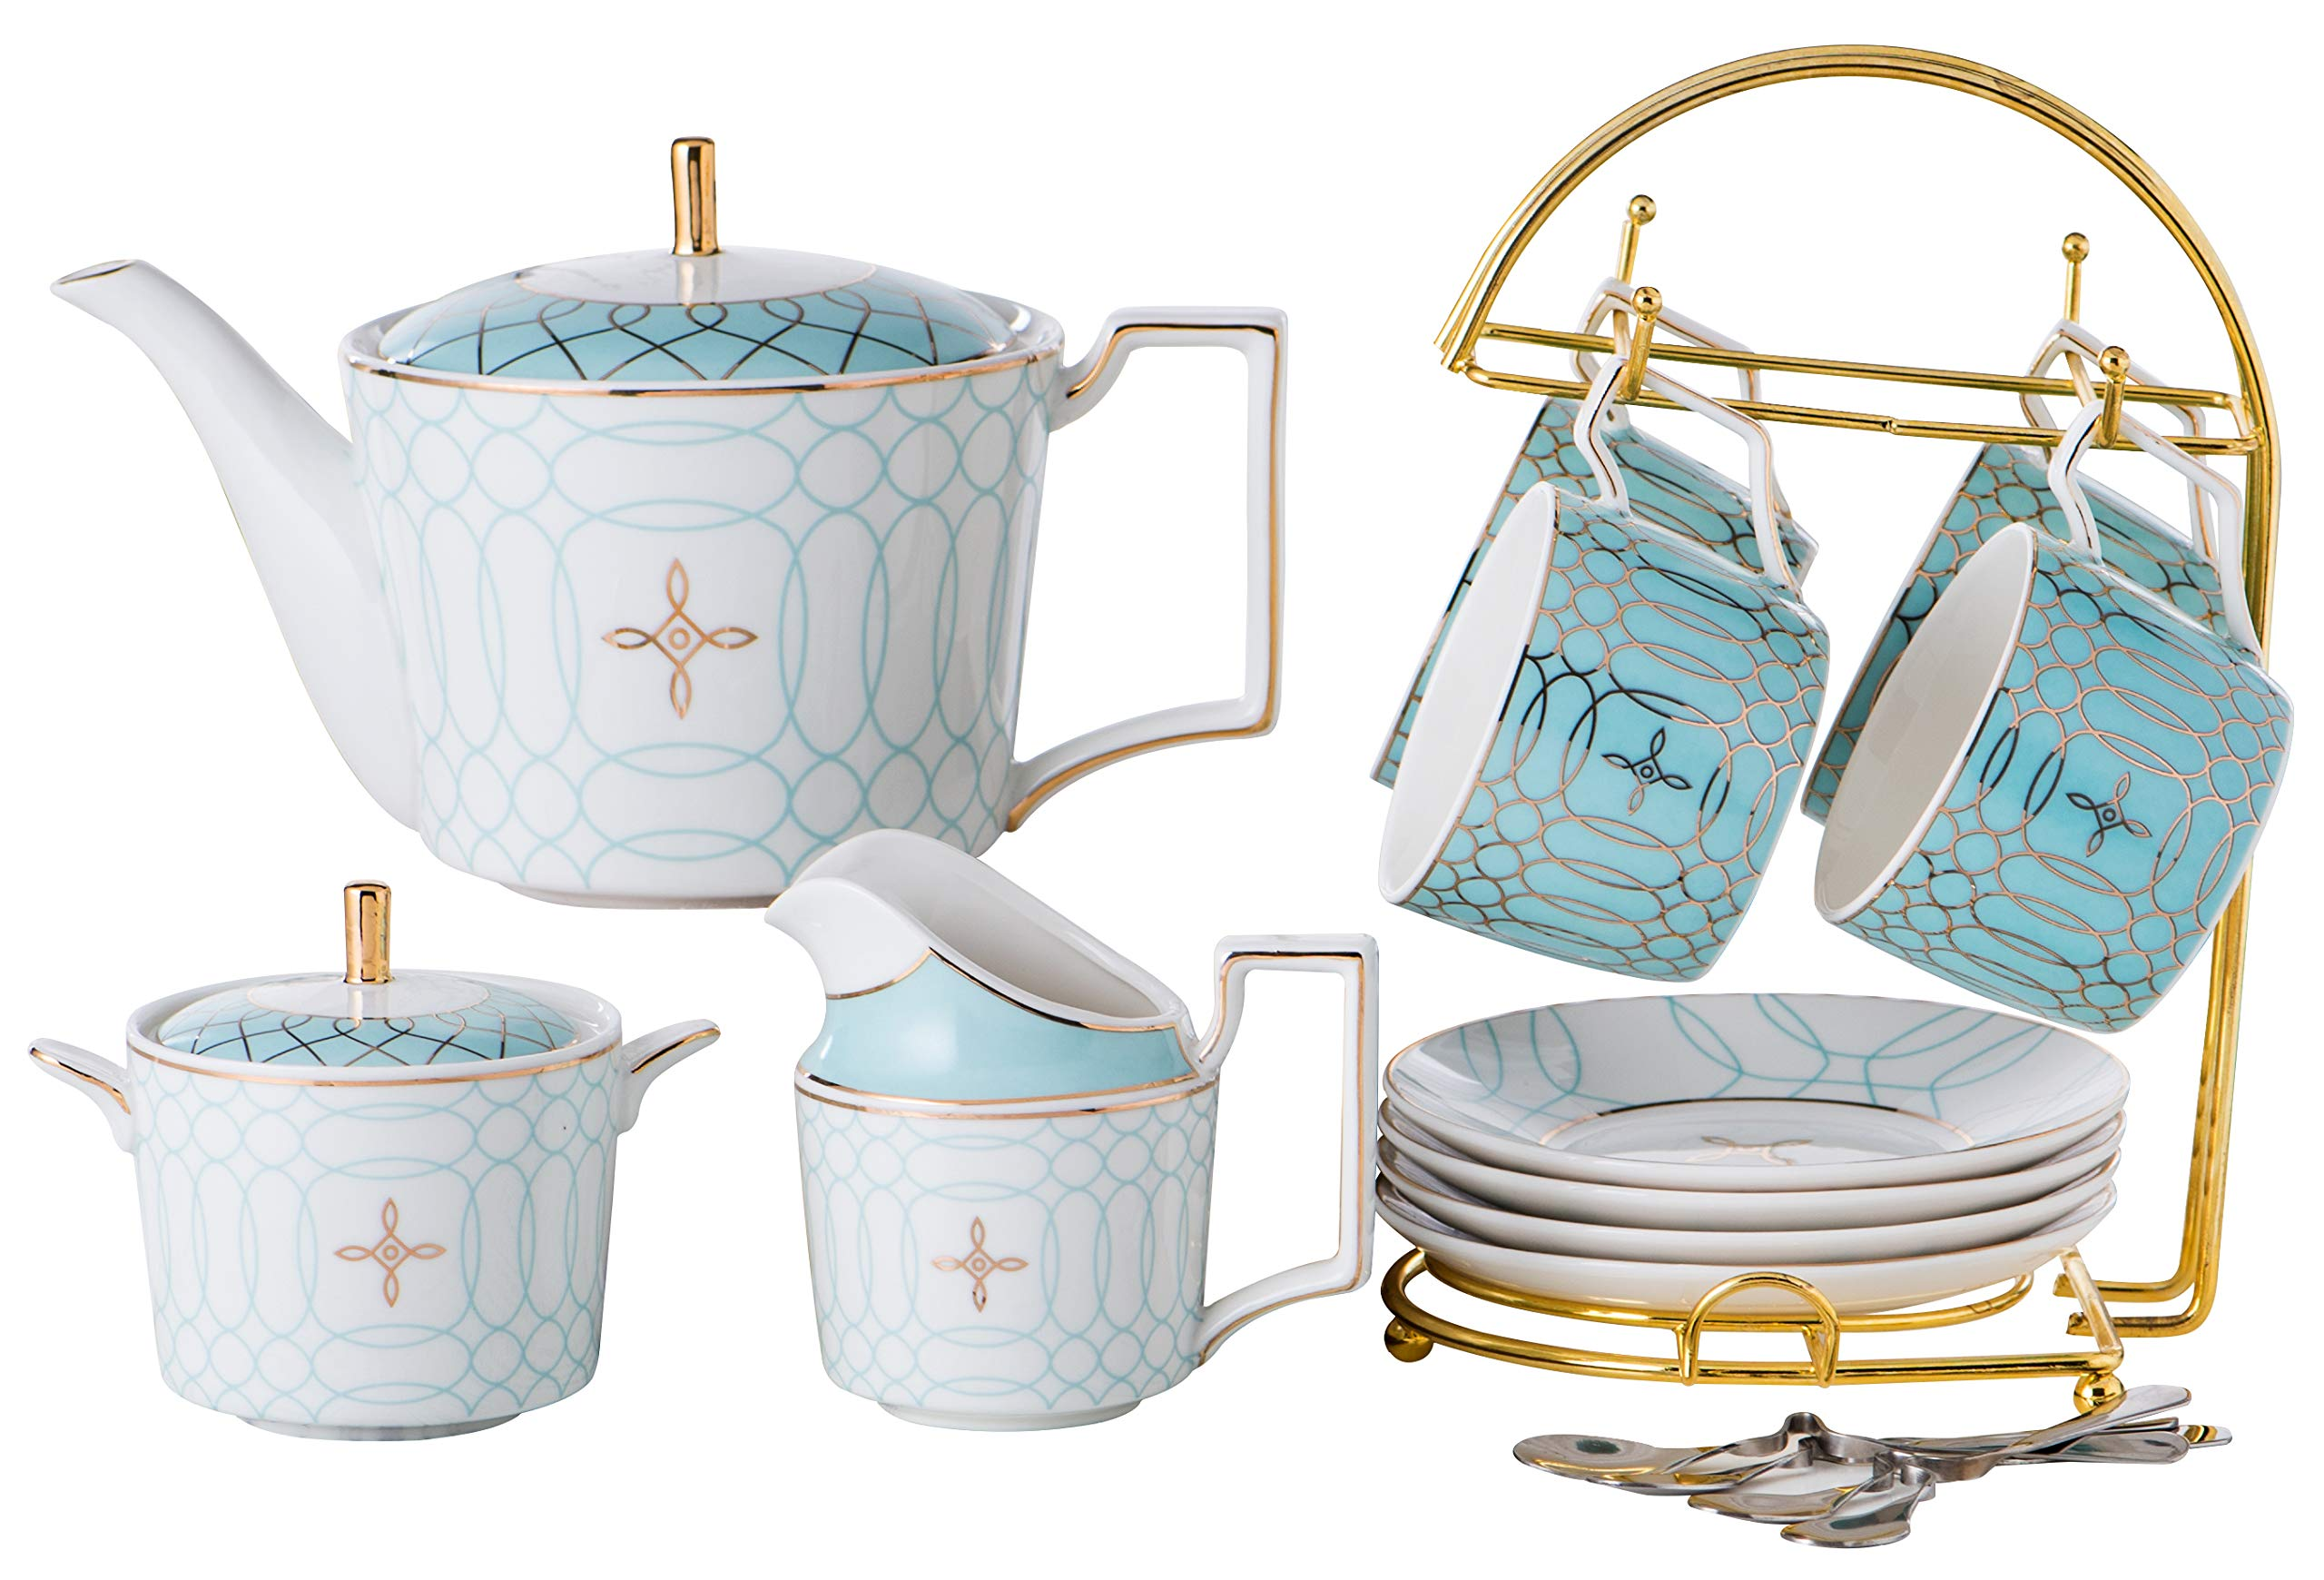 Jusalpha Elegant Gold Pattern Coffee Cup/Teacup Set, 7 OZ Cups & Saucer Service for 4, with Teapot-Sugar Bowl-Cream Pitcher Teaspoons (JQTCS15 Full set) (Blue)